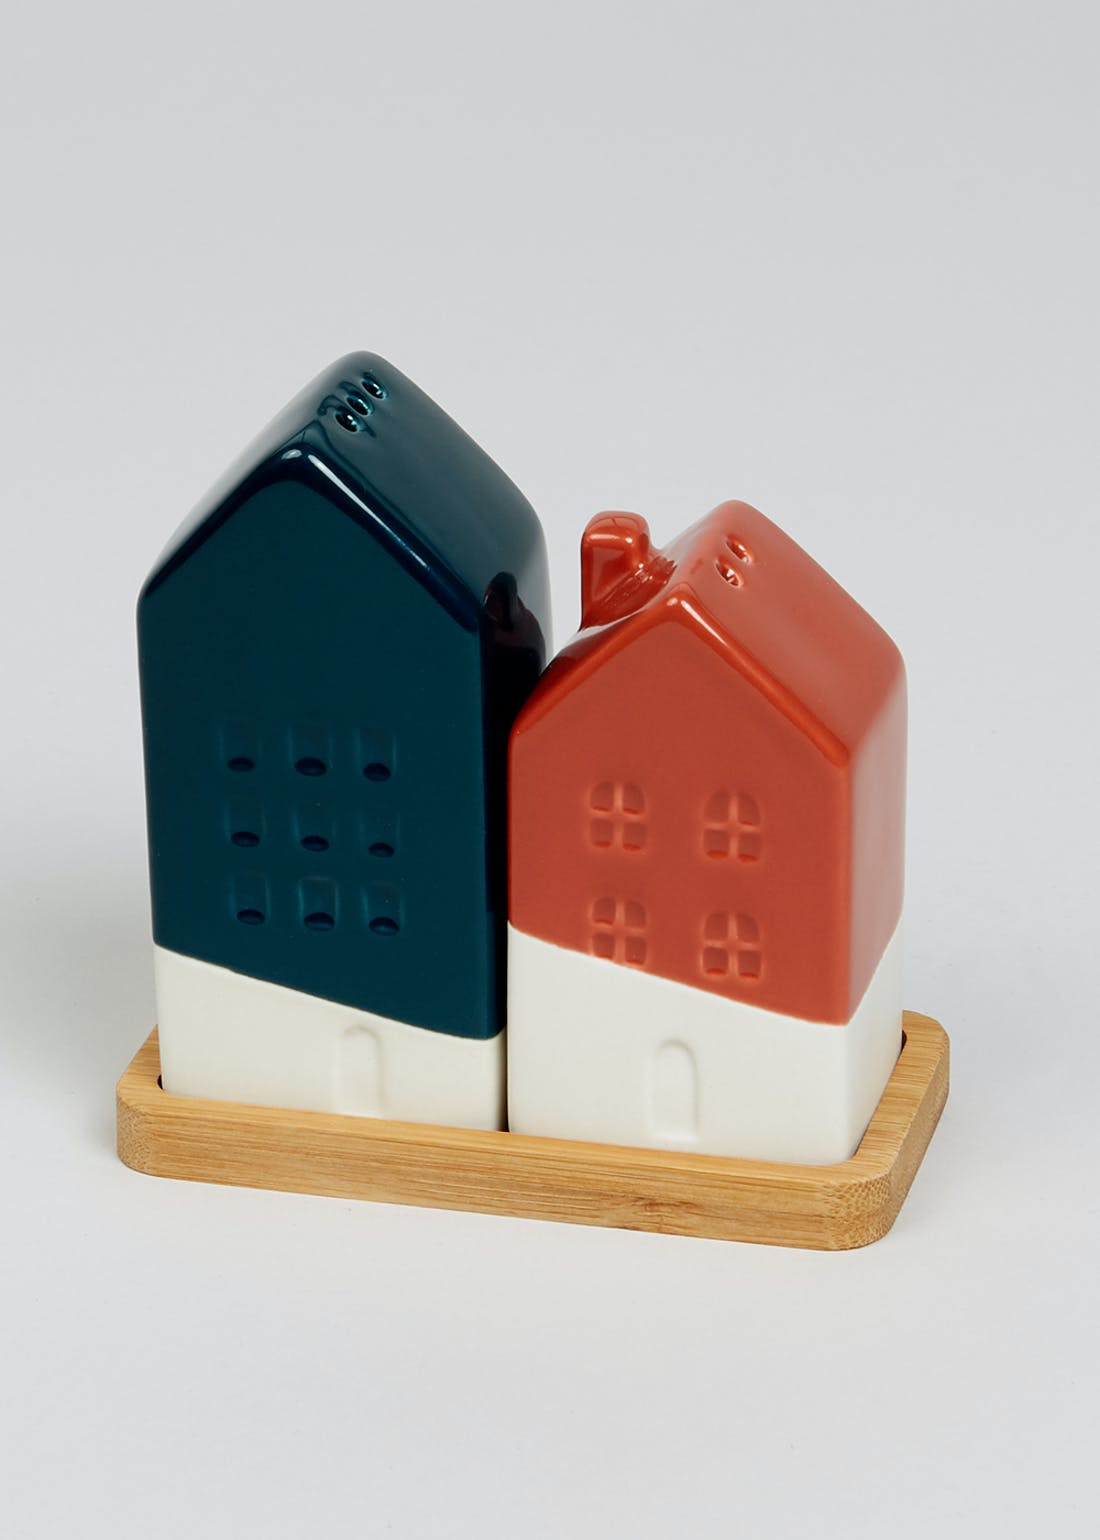 Ceramic House Salt & Pepper Shakers (10cm x 10cm x 5cm)